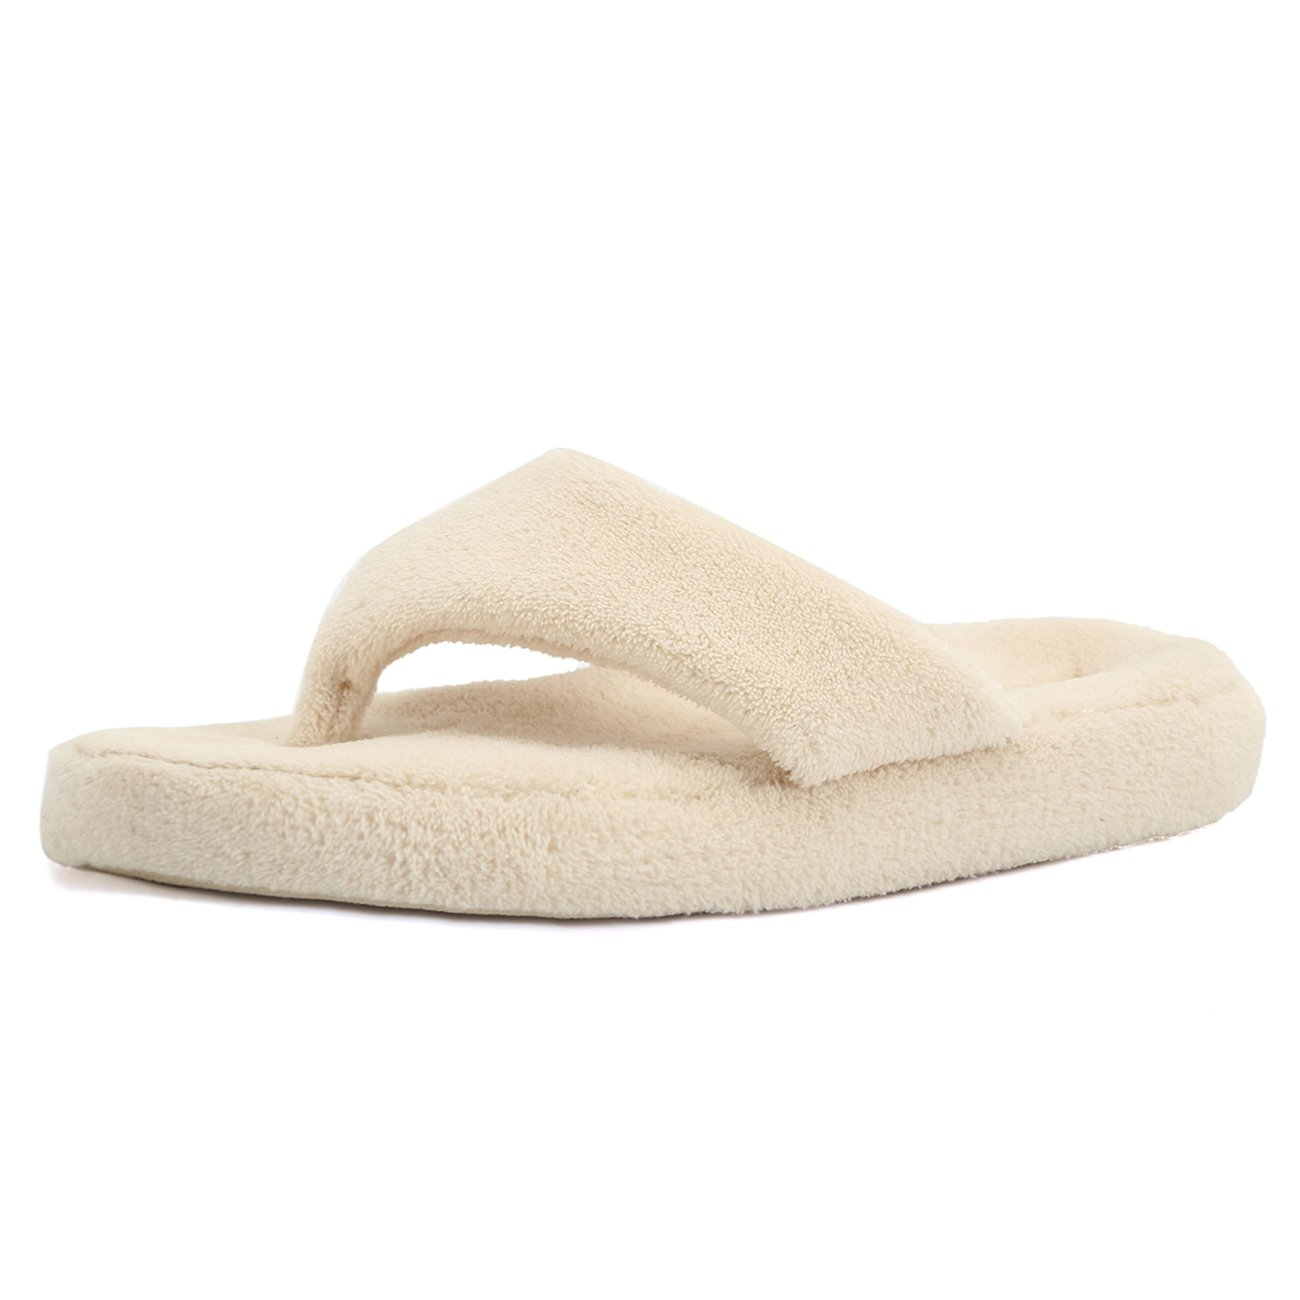 09a3259e1e07 CIOR Fantiny Women s Spa Thong Slippers Flip Flops Terry House Shoes Indoor    Outdoor